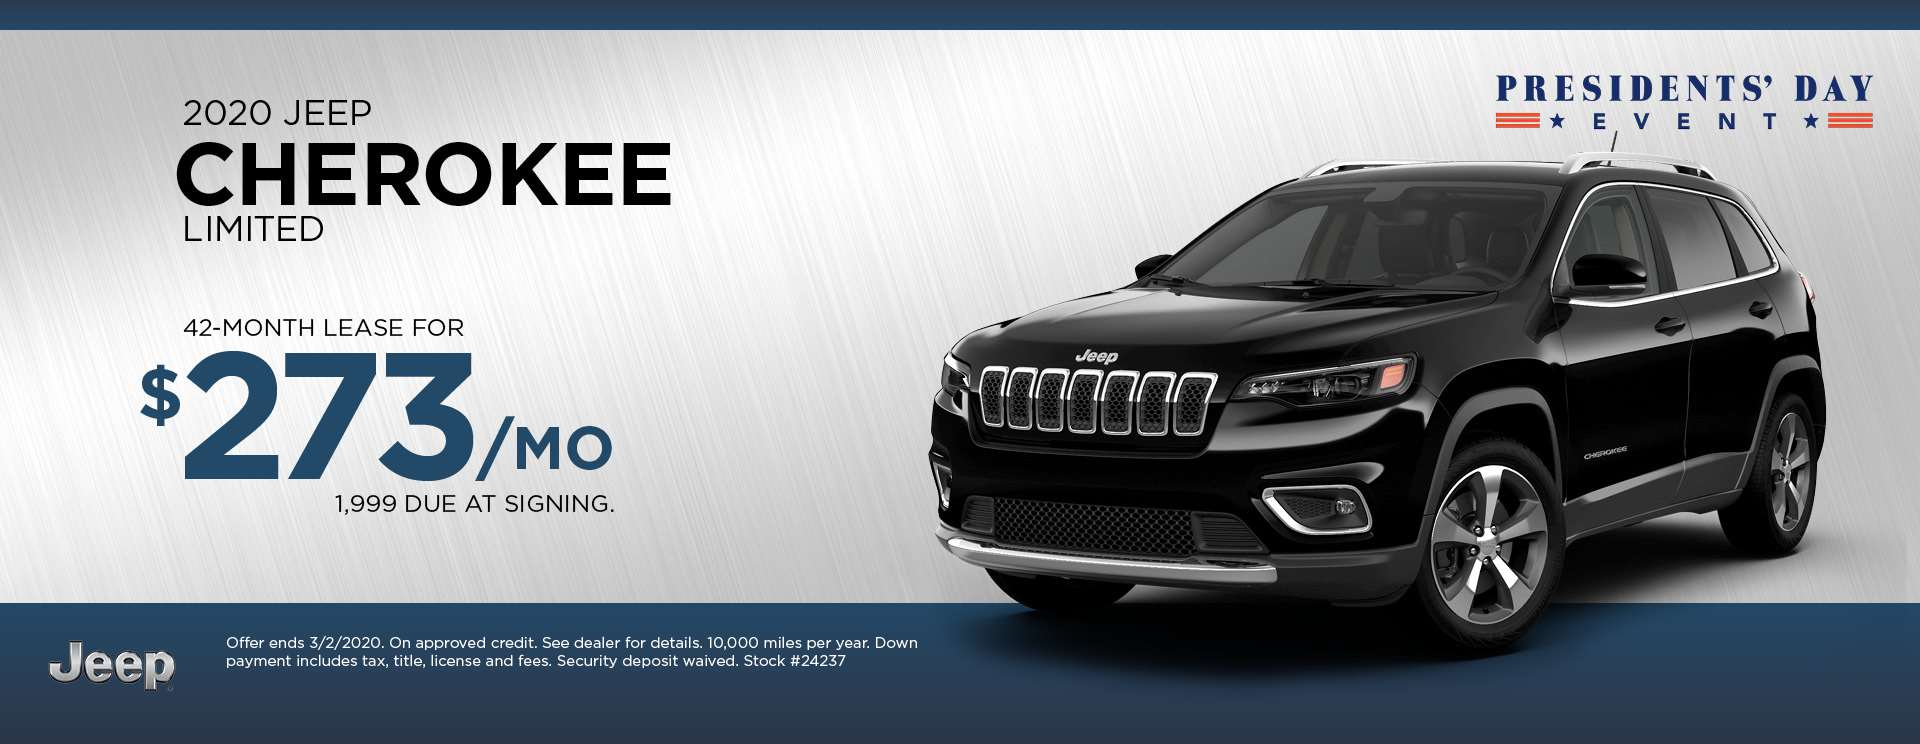 2020 Jeep Cherokee Limited - President's Day Event